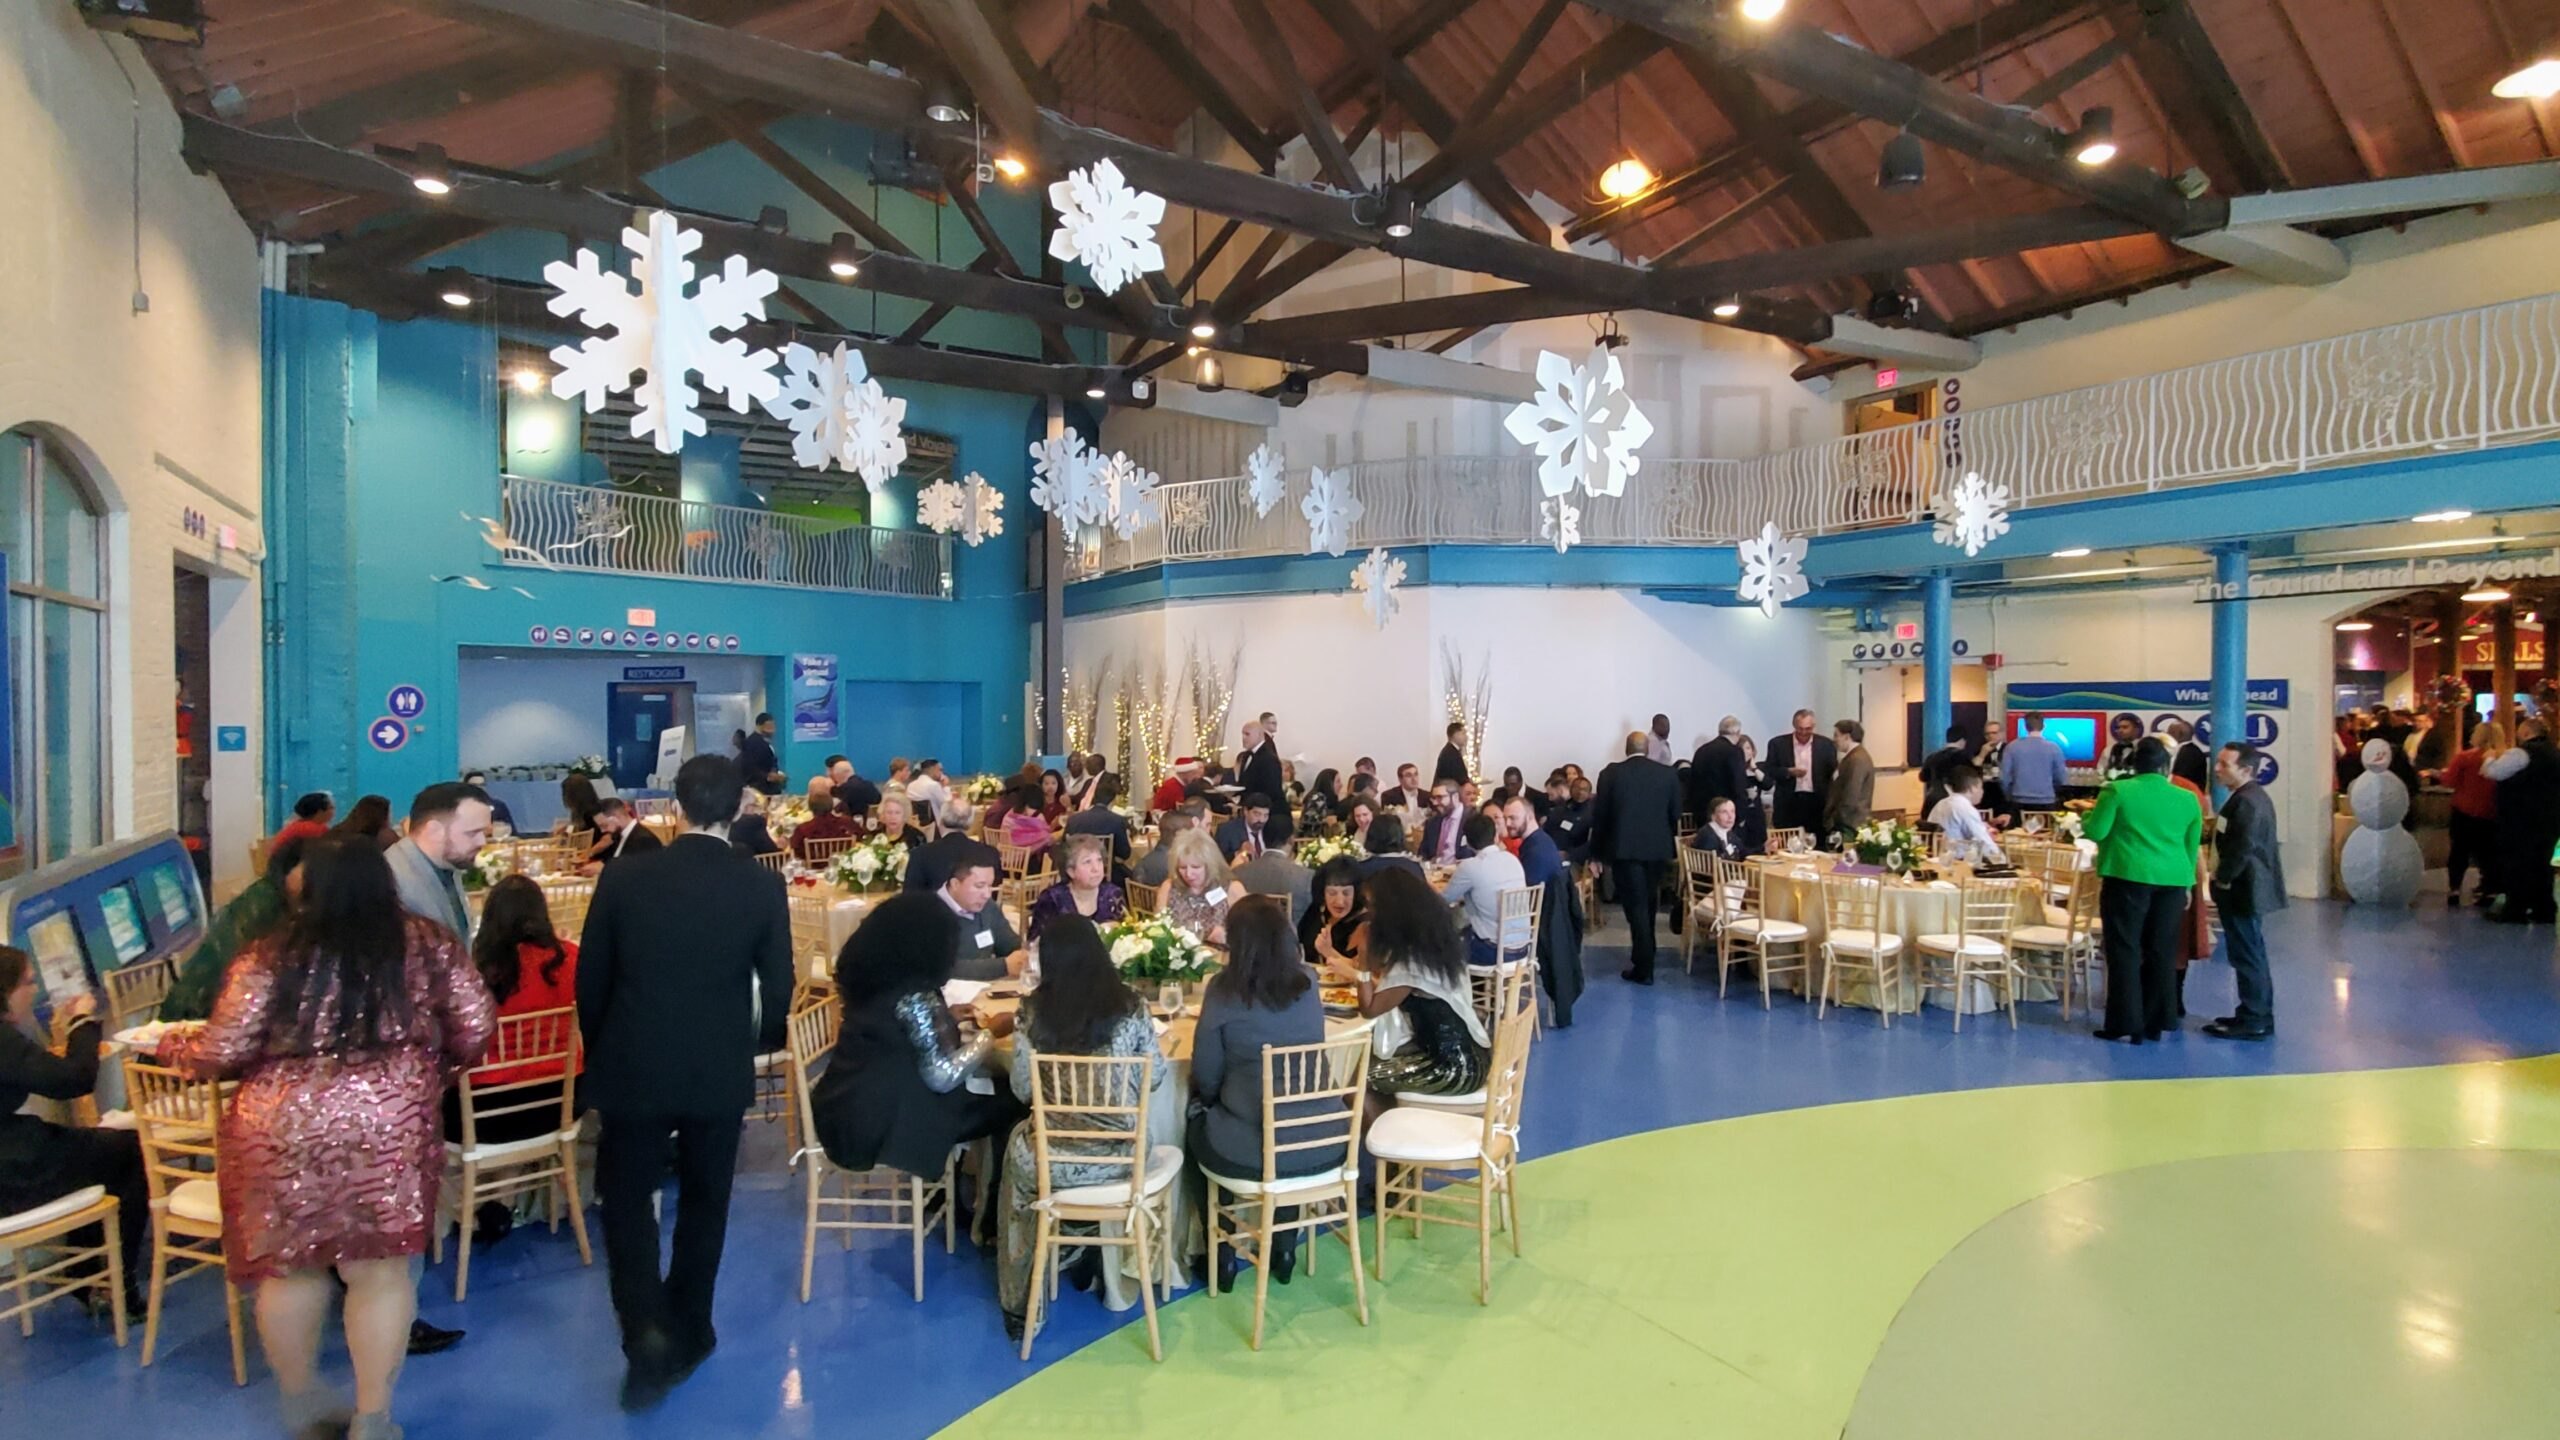 Corporatate holiday party at the Maritime Aquarium showing guests seated for dinner at tables in reception hall